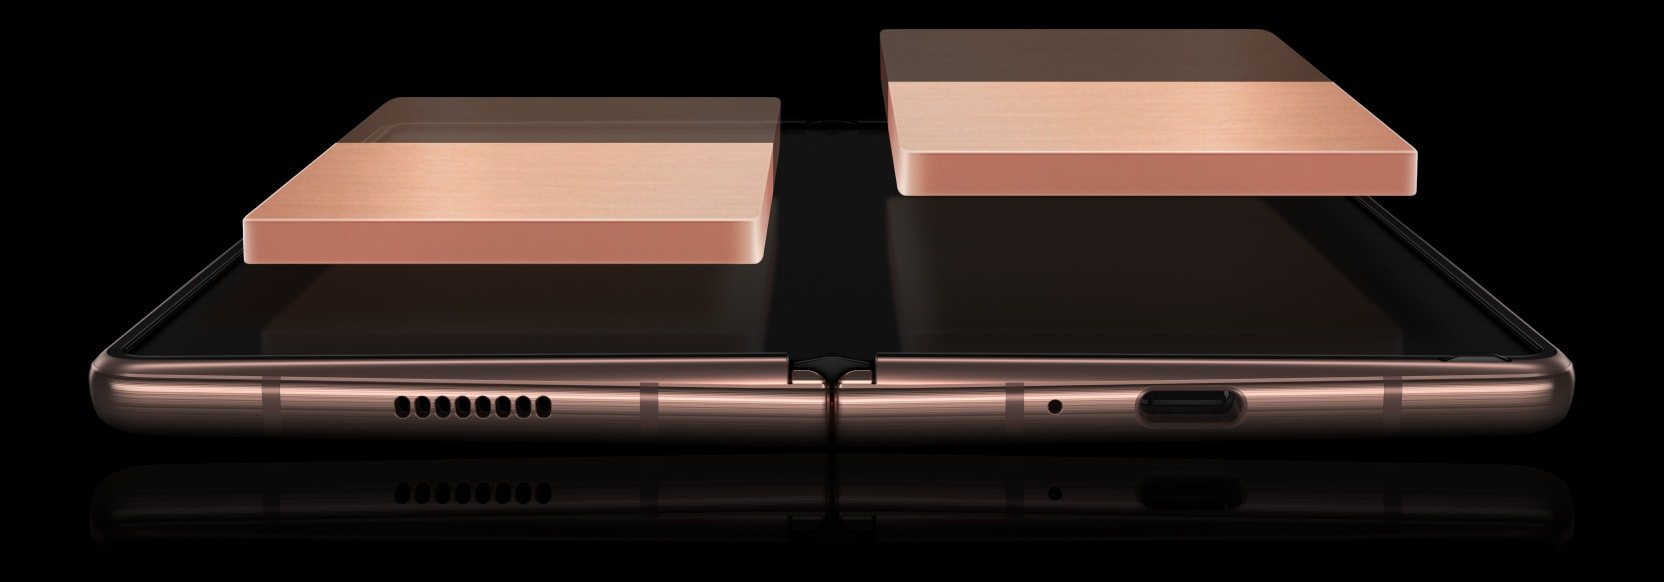 Galaxy Z Fold2 5G in Mystic Bronze, unfolded and laying faceup. The two sides of the All-day Dual Battery appear floating over the Main Screen, and the colour reduces to demonstrate how the dual battery works as one to equally drain power.